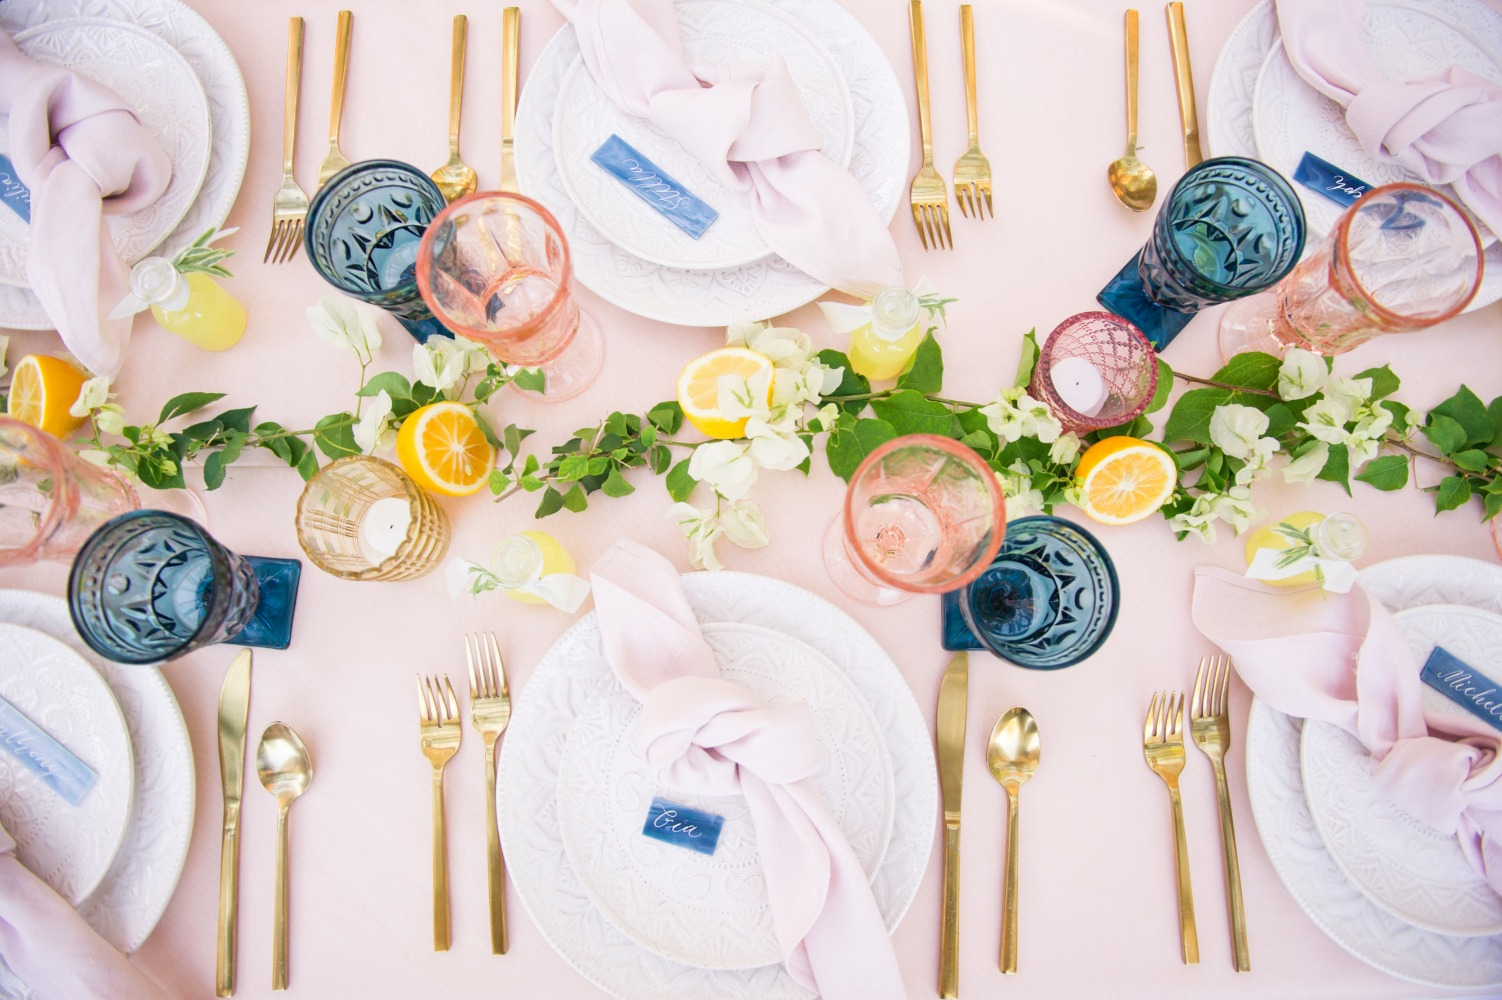 elegant wedding table decor in pink blue and gold